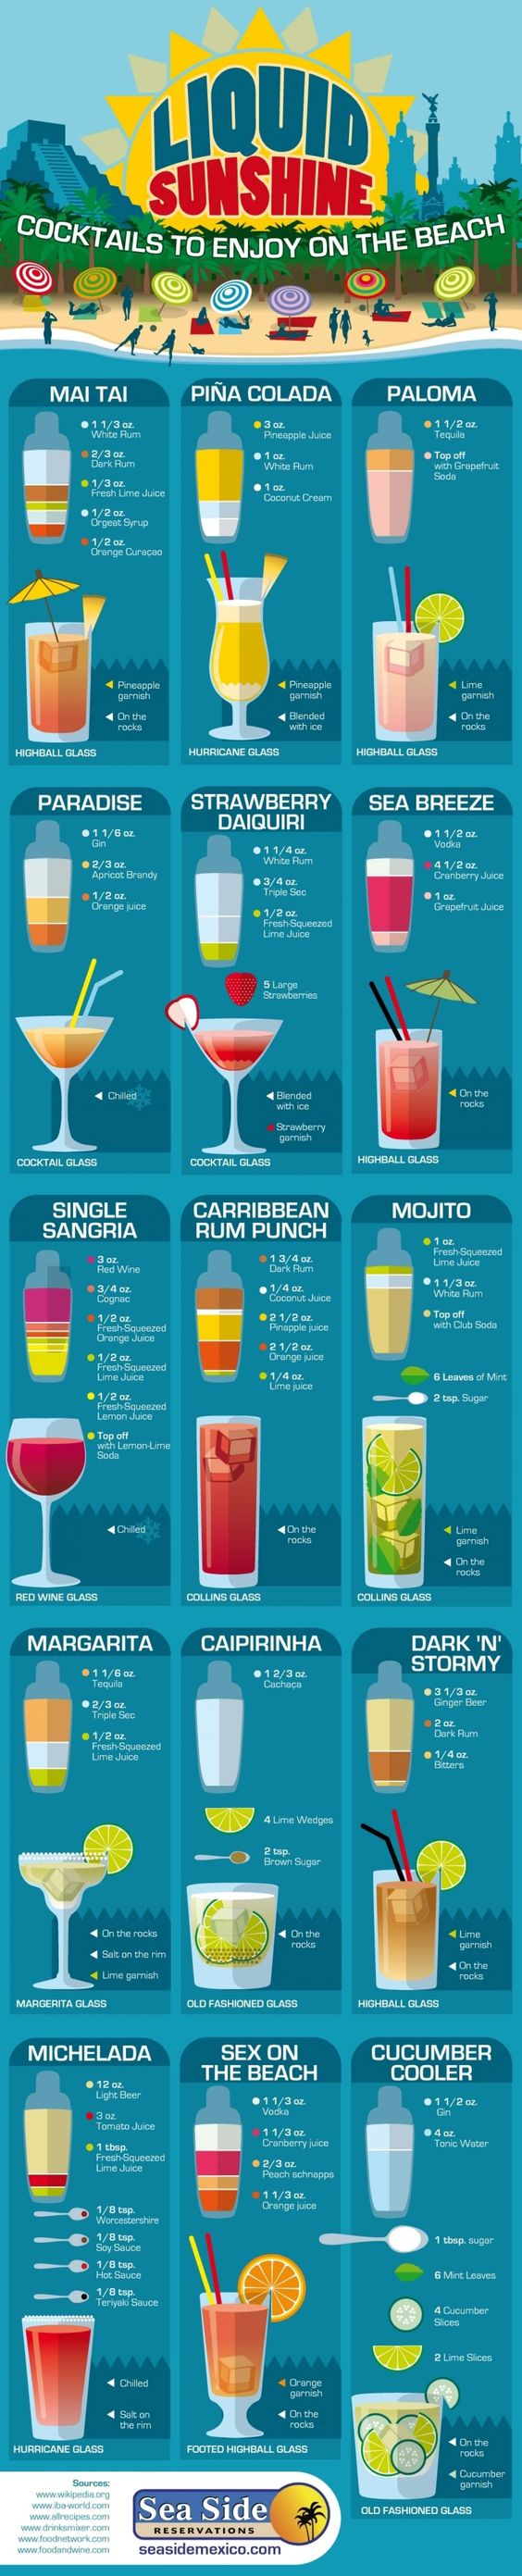 Tasty tropical drink recipes to make on your next Beach Vacation. Great for home to post trip to help you re-live the memory.